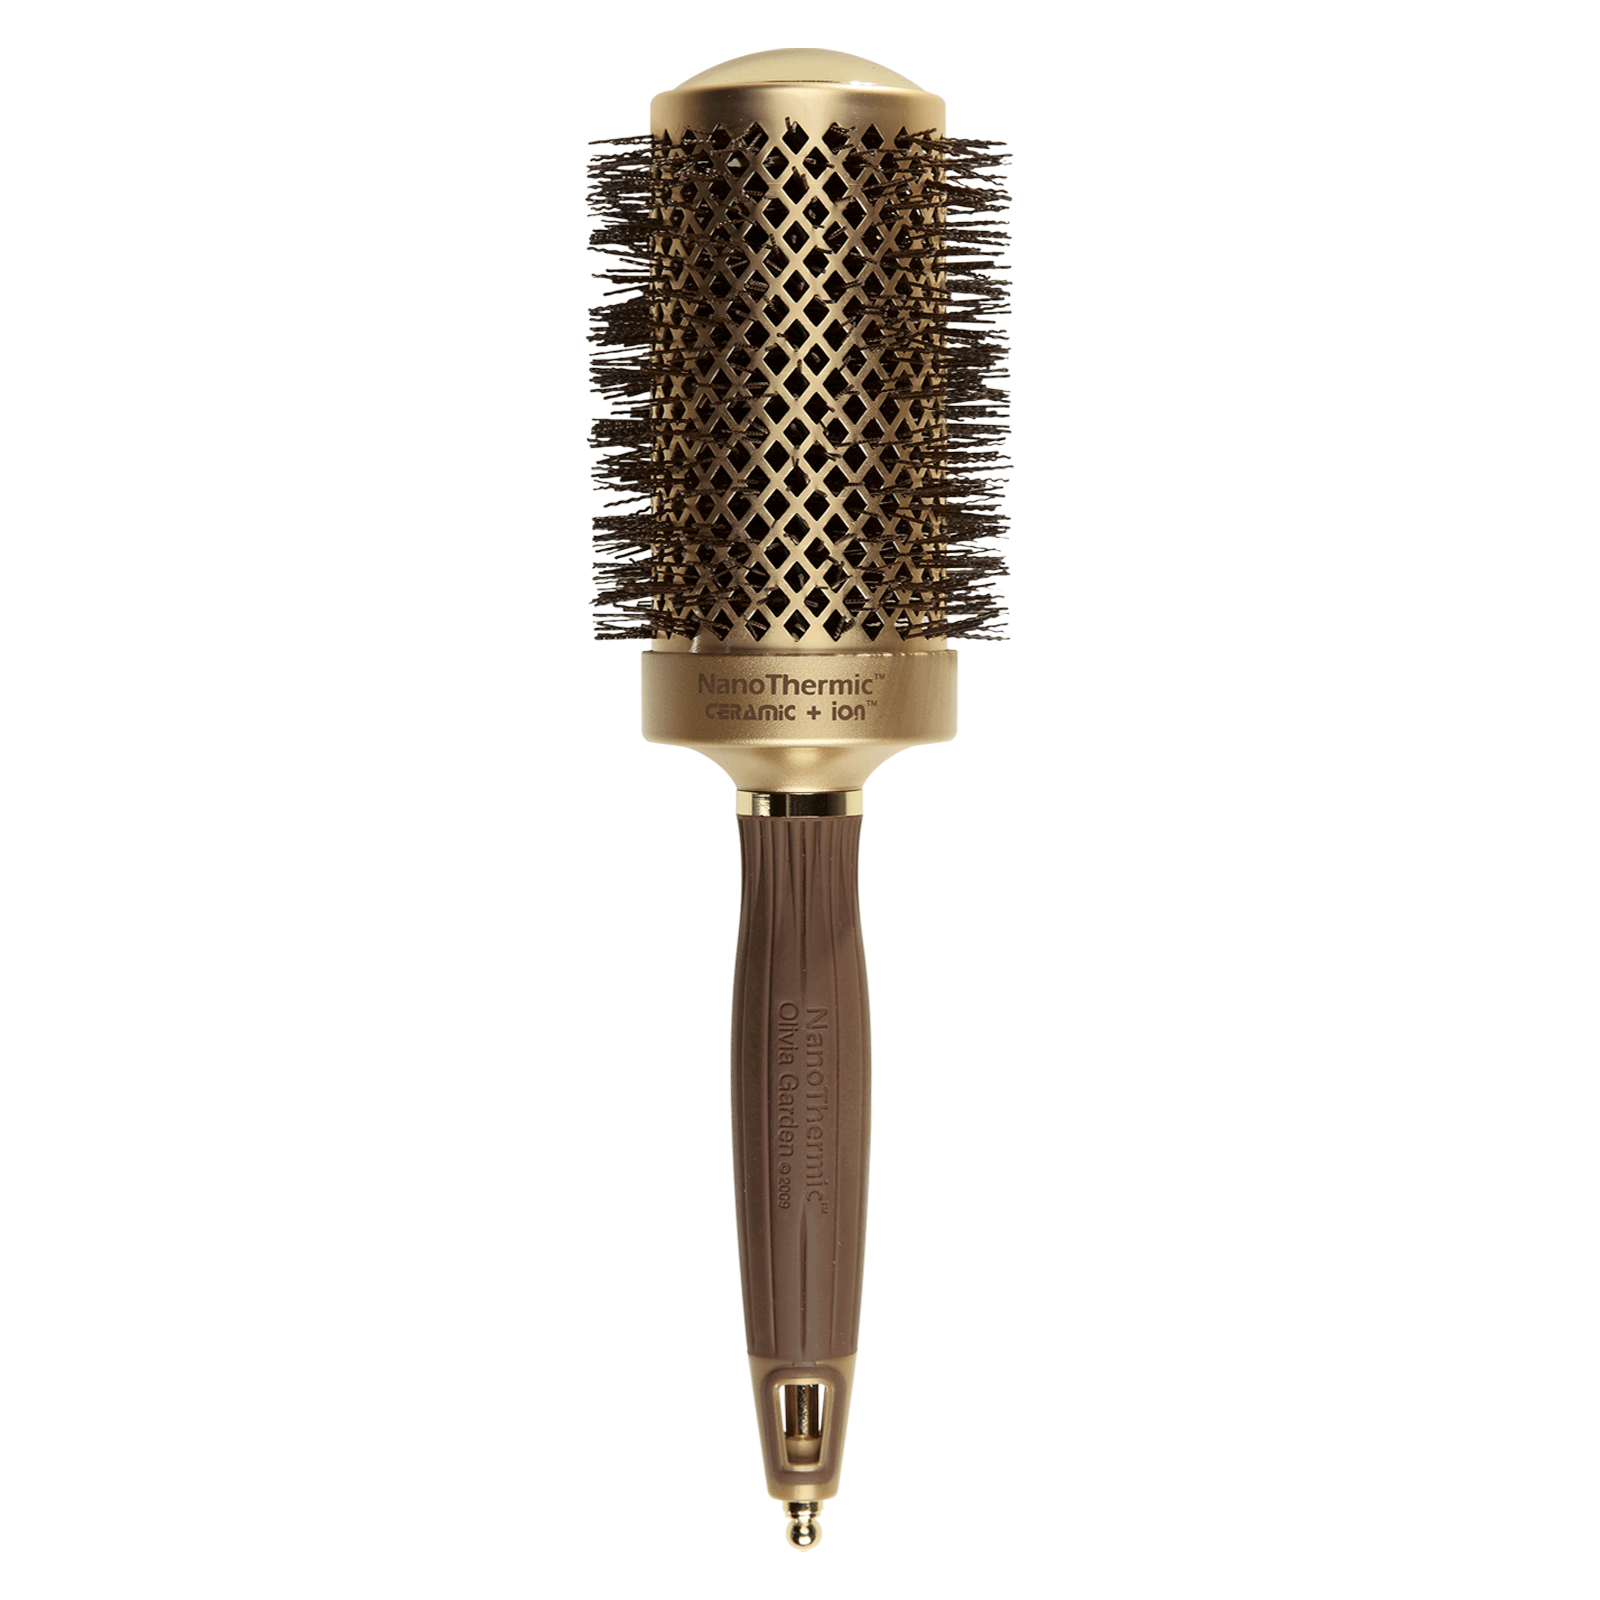 NanoThermic Thermal Brush 2 1/8 Inch